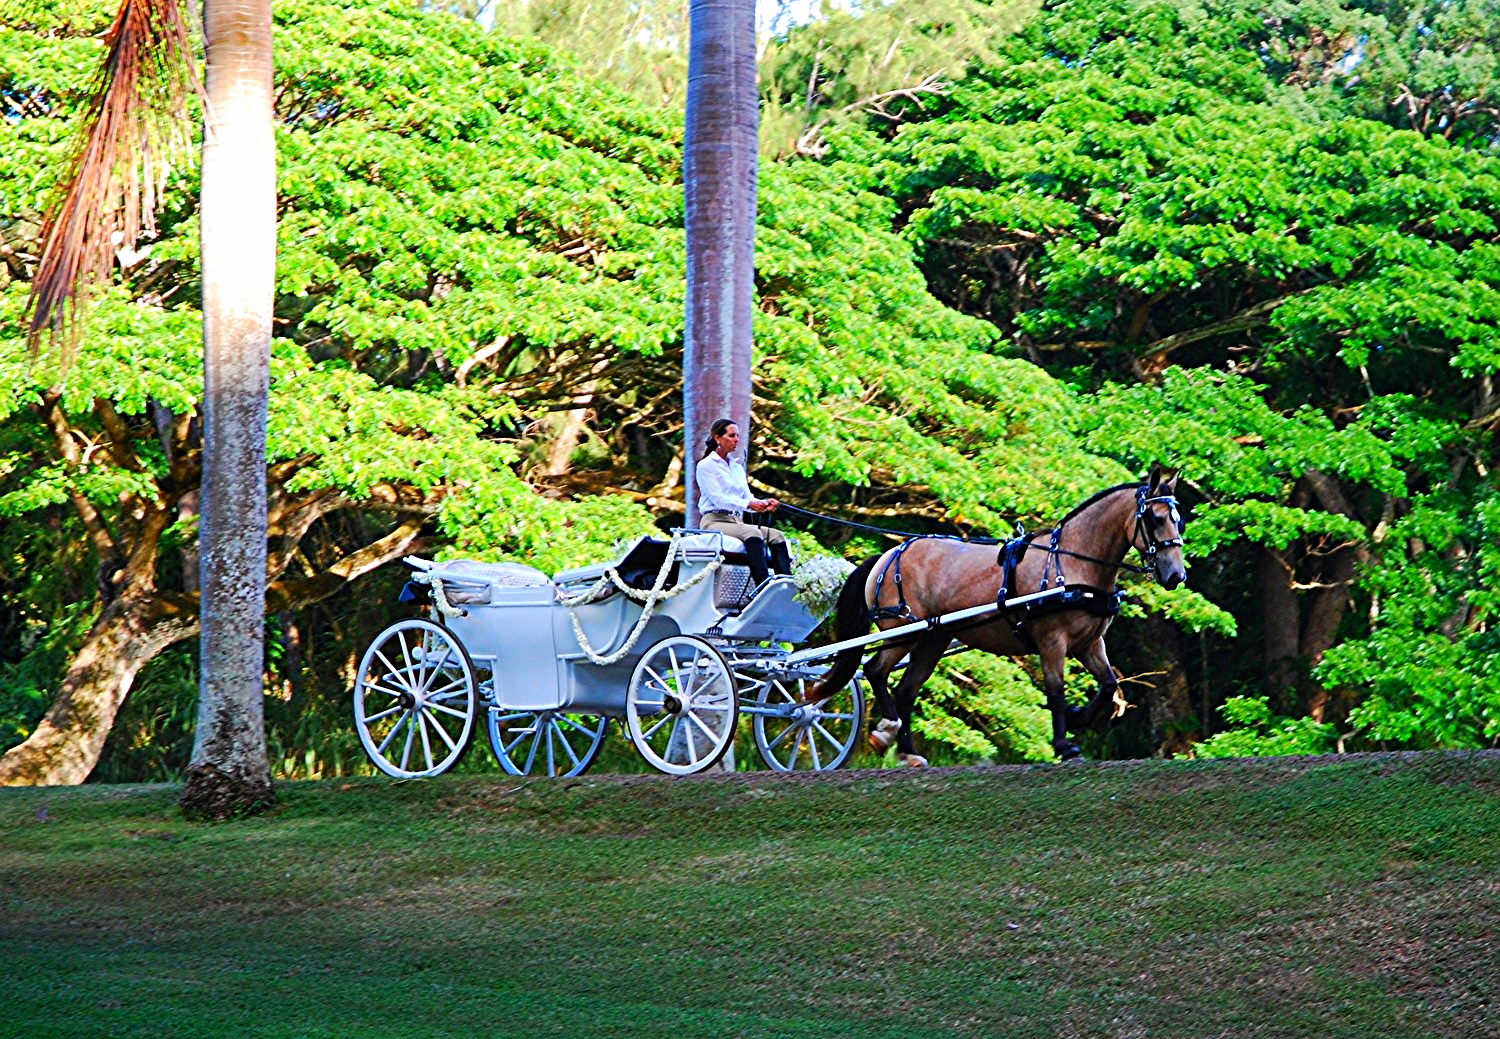 A horse and carriage is a Royal Hawaiian Tradition that can bring nobility and splendor like no other. ...                                    Enjoy your day in a manner befitting royalty.